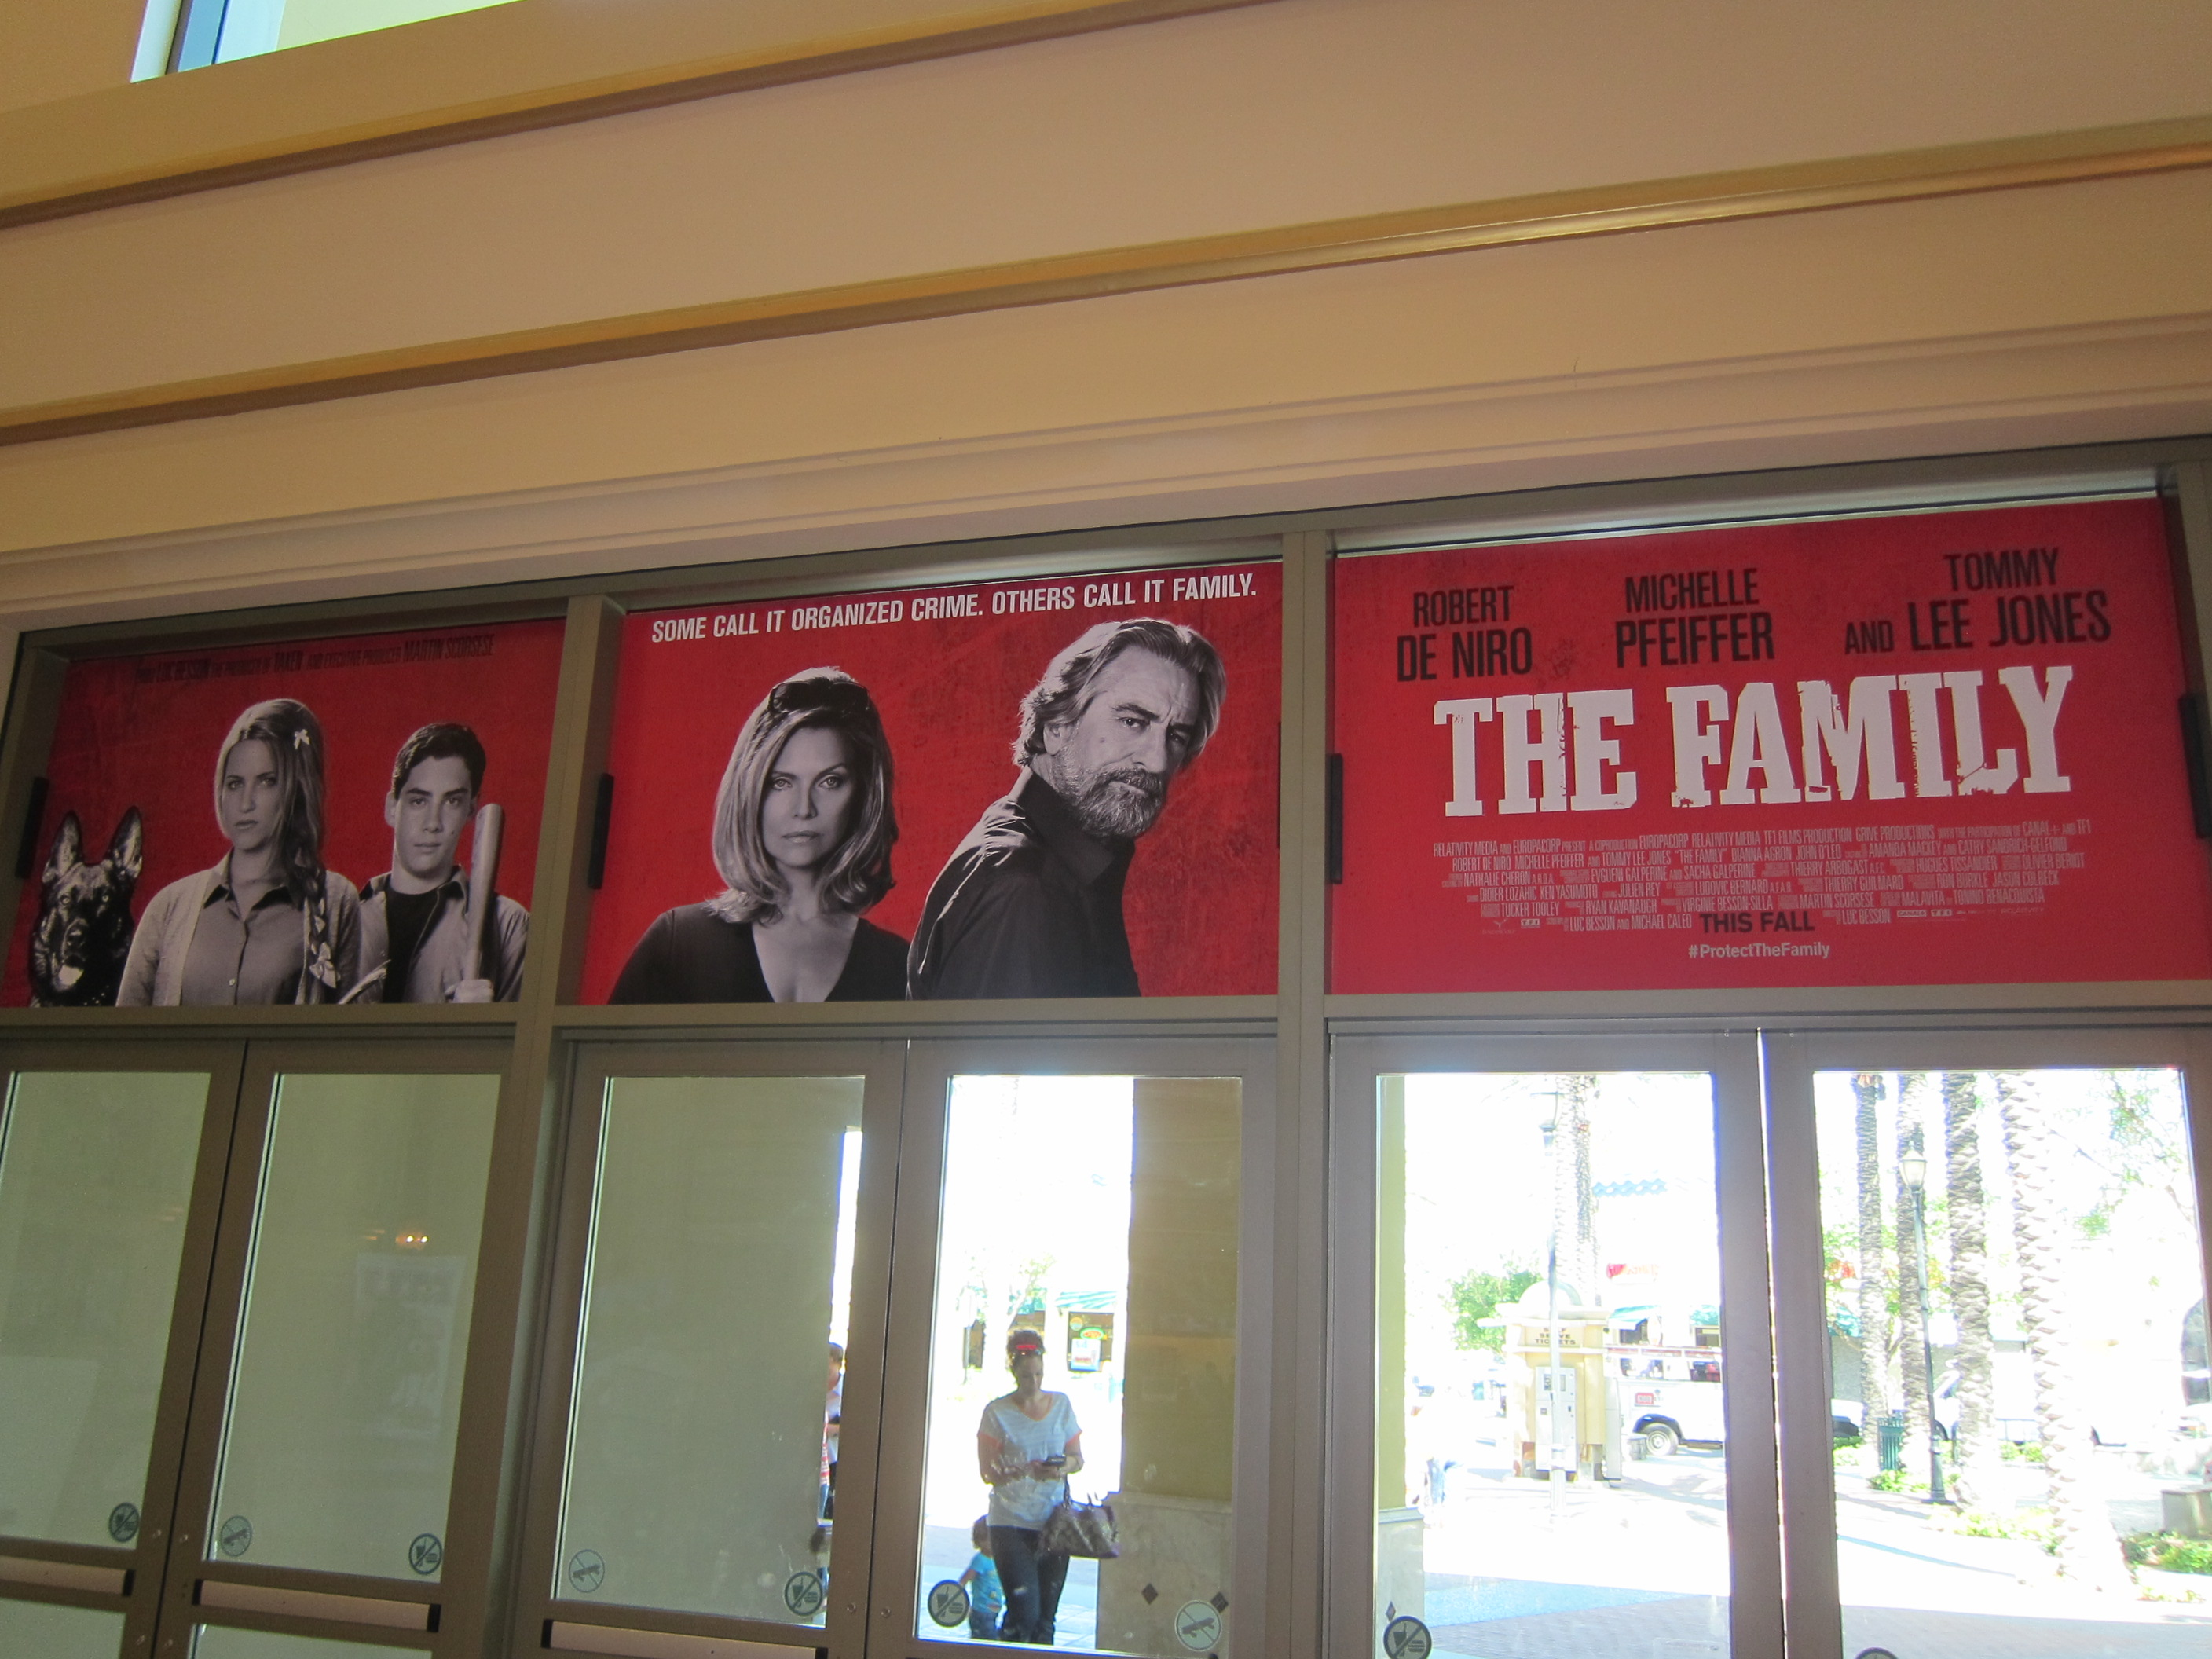 THE FAMILY above the lobby front doors of the Vista Theatre in Southern California.